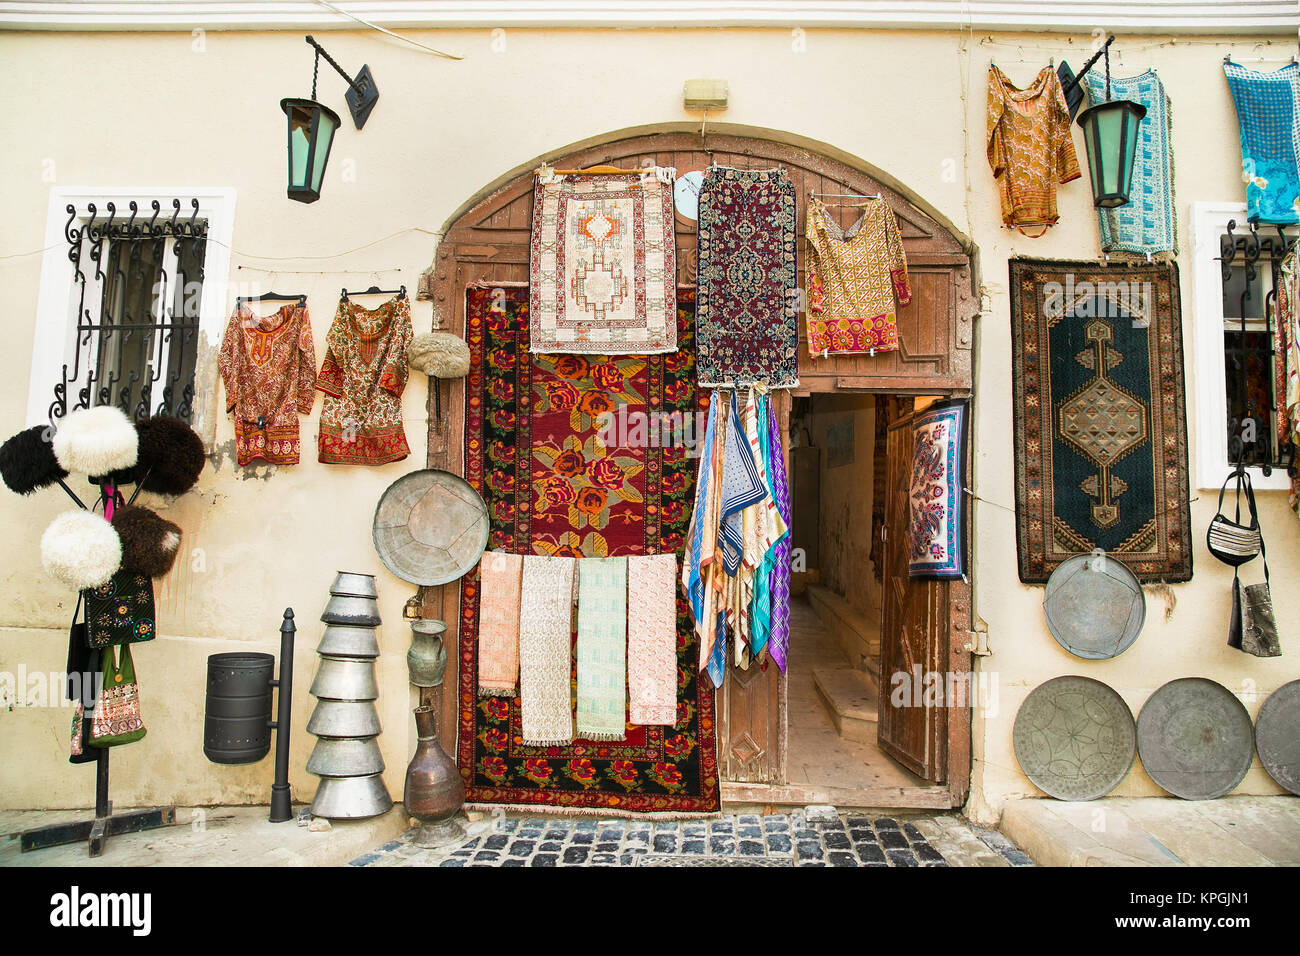 Souvenir shop in Icheri Sheher (Old Town) of Baku, Azerbaijan. Typical tourist shop with souvenirs and antiques. - Stock Image